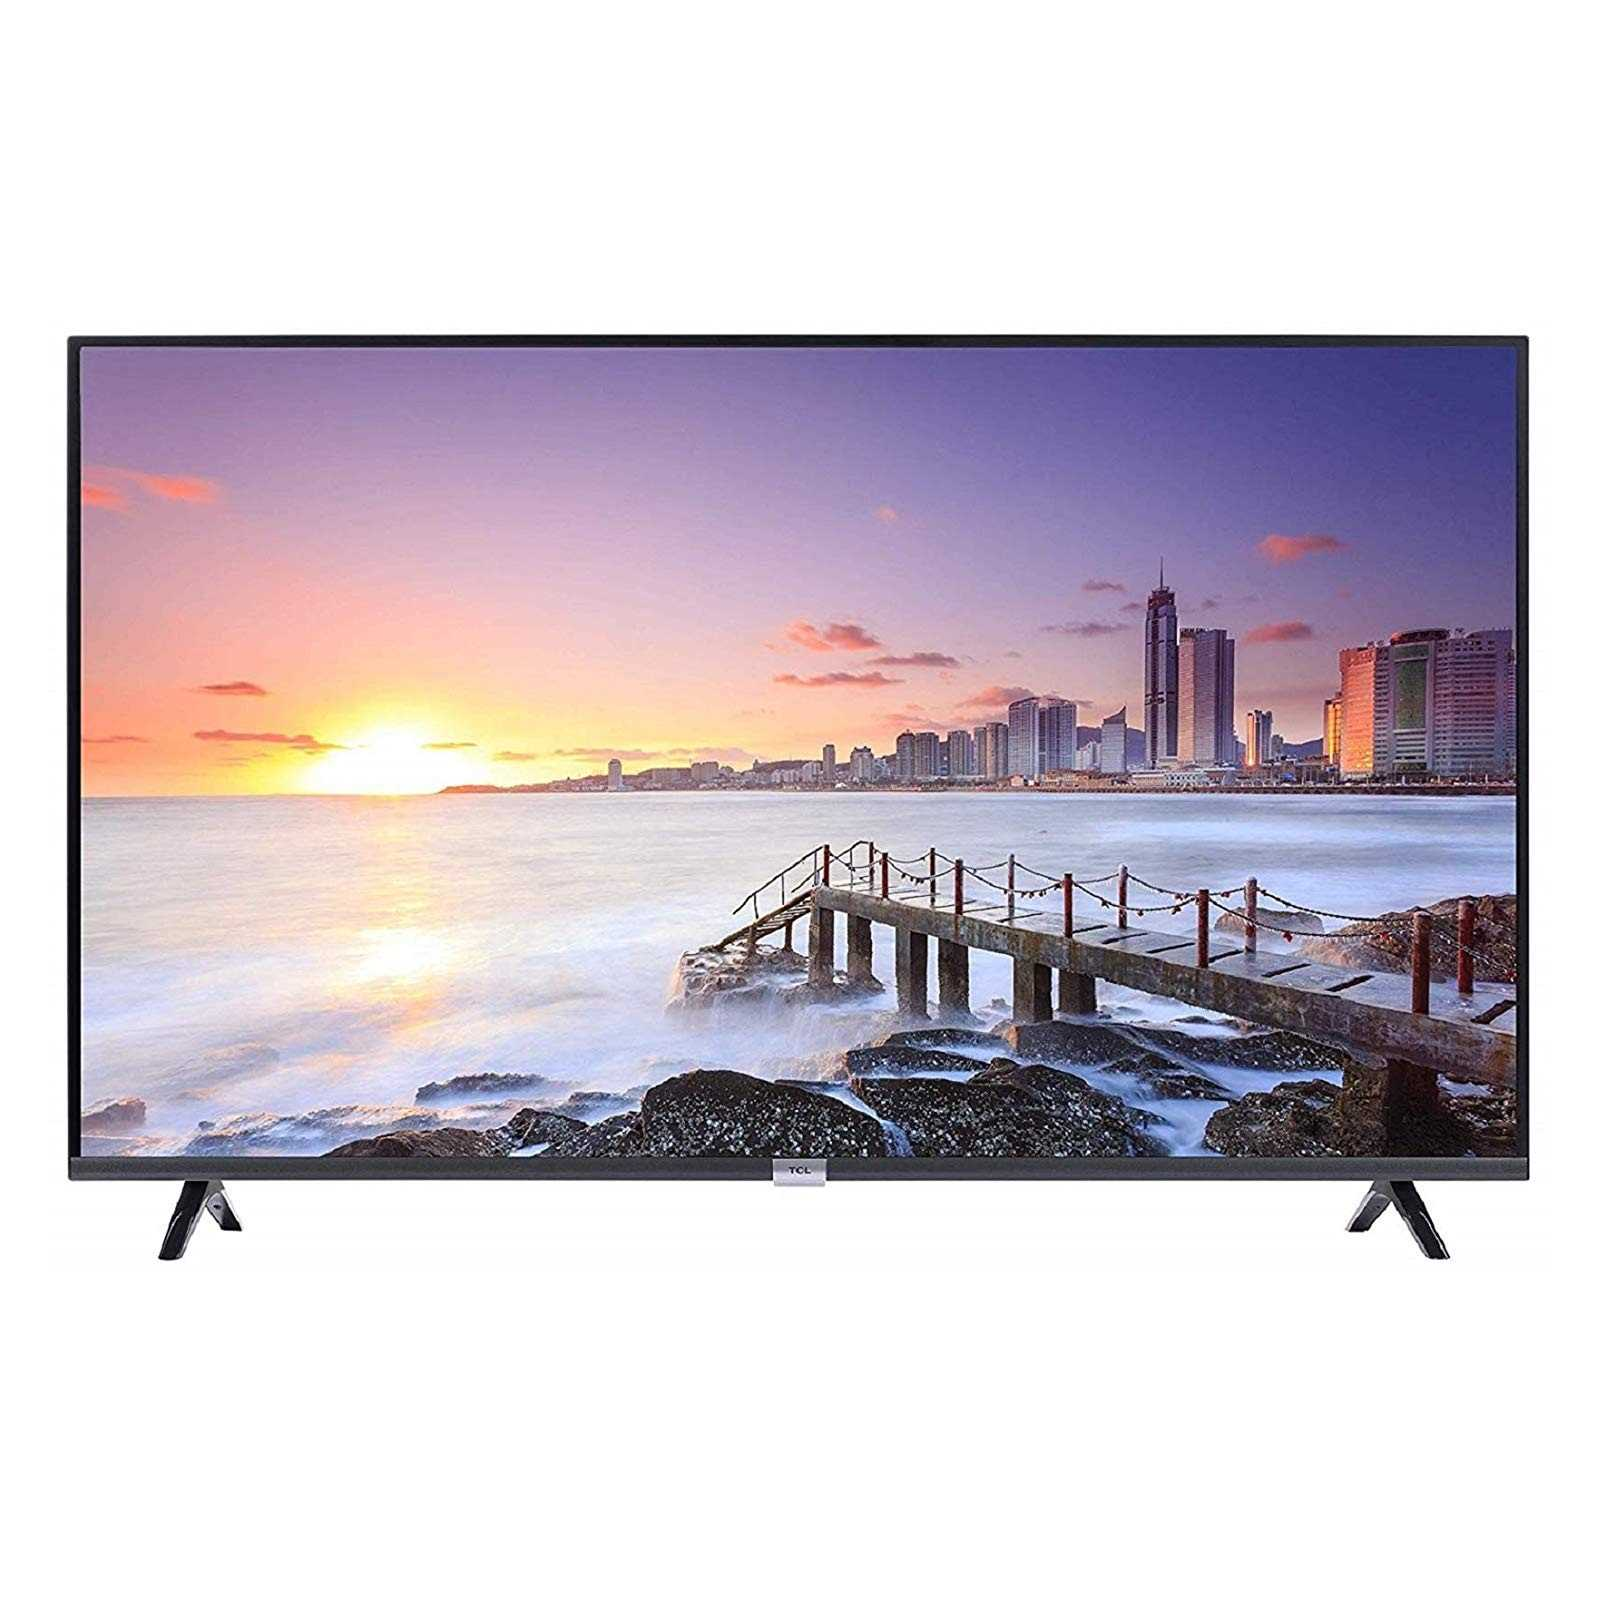 TCL 32P30S 32 Inch HD Ready Smart Android LED Television